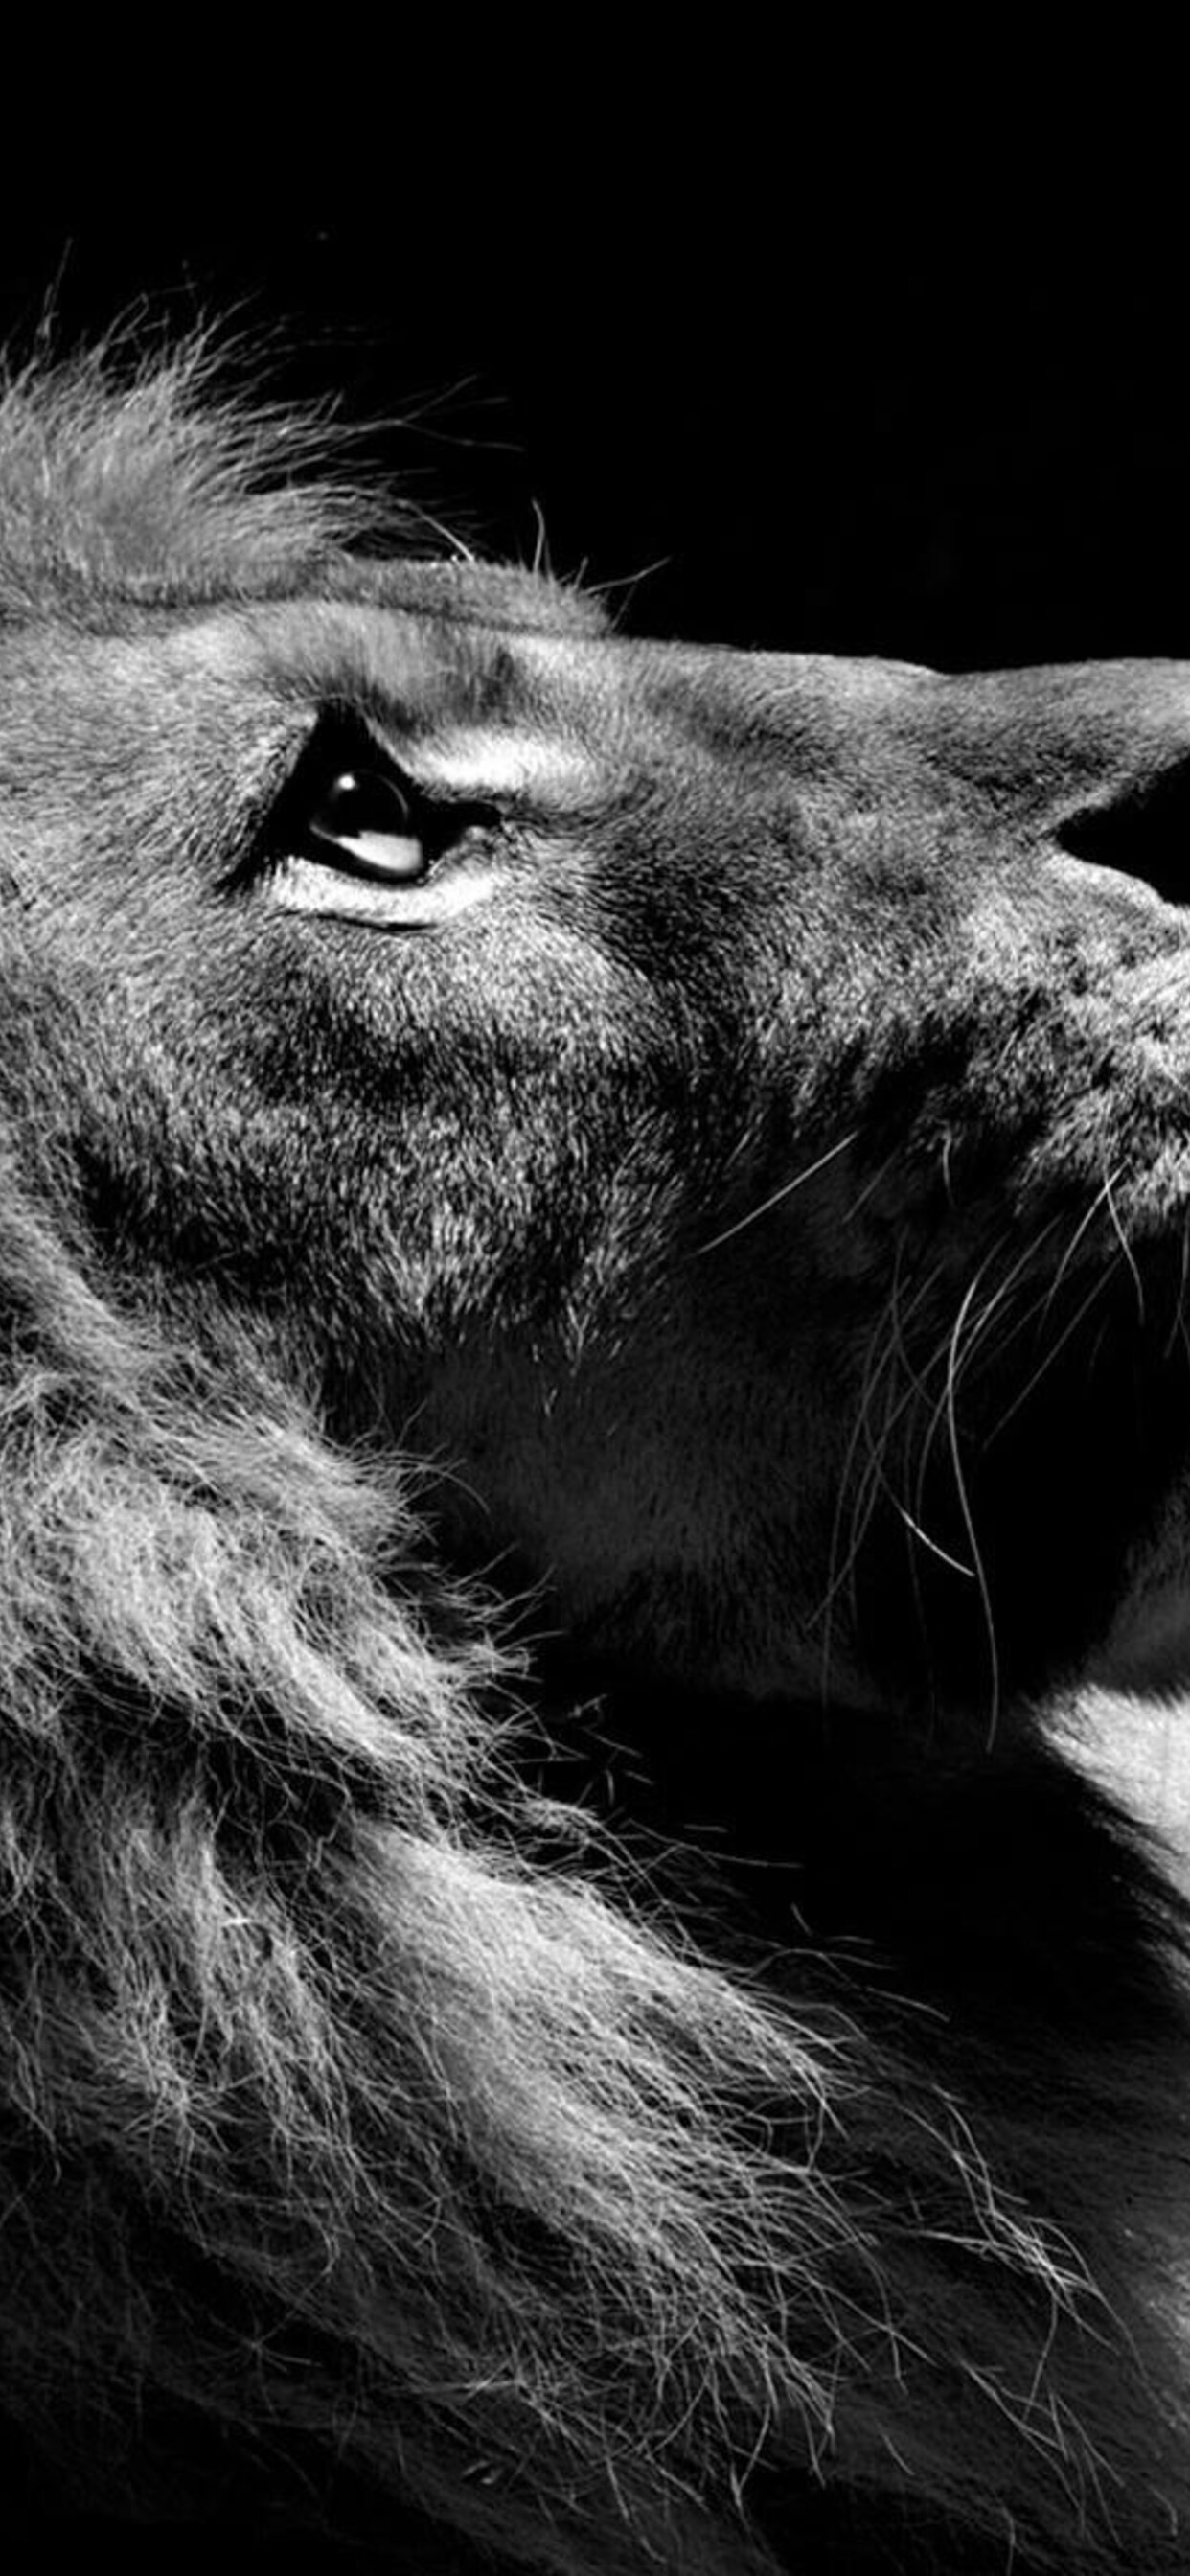 1242x2688 Lion Black And White Iphone Xs Max Hd 4k Wallpapers